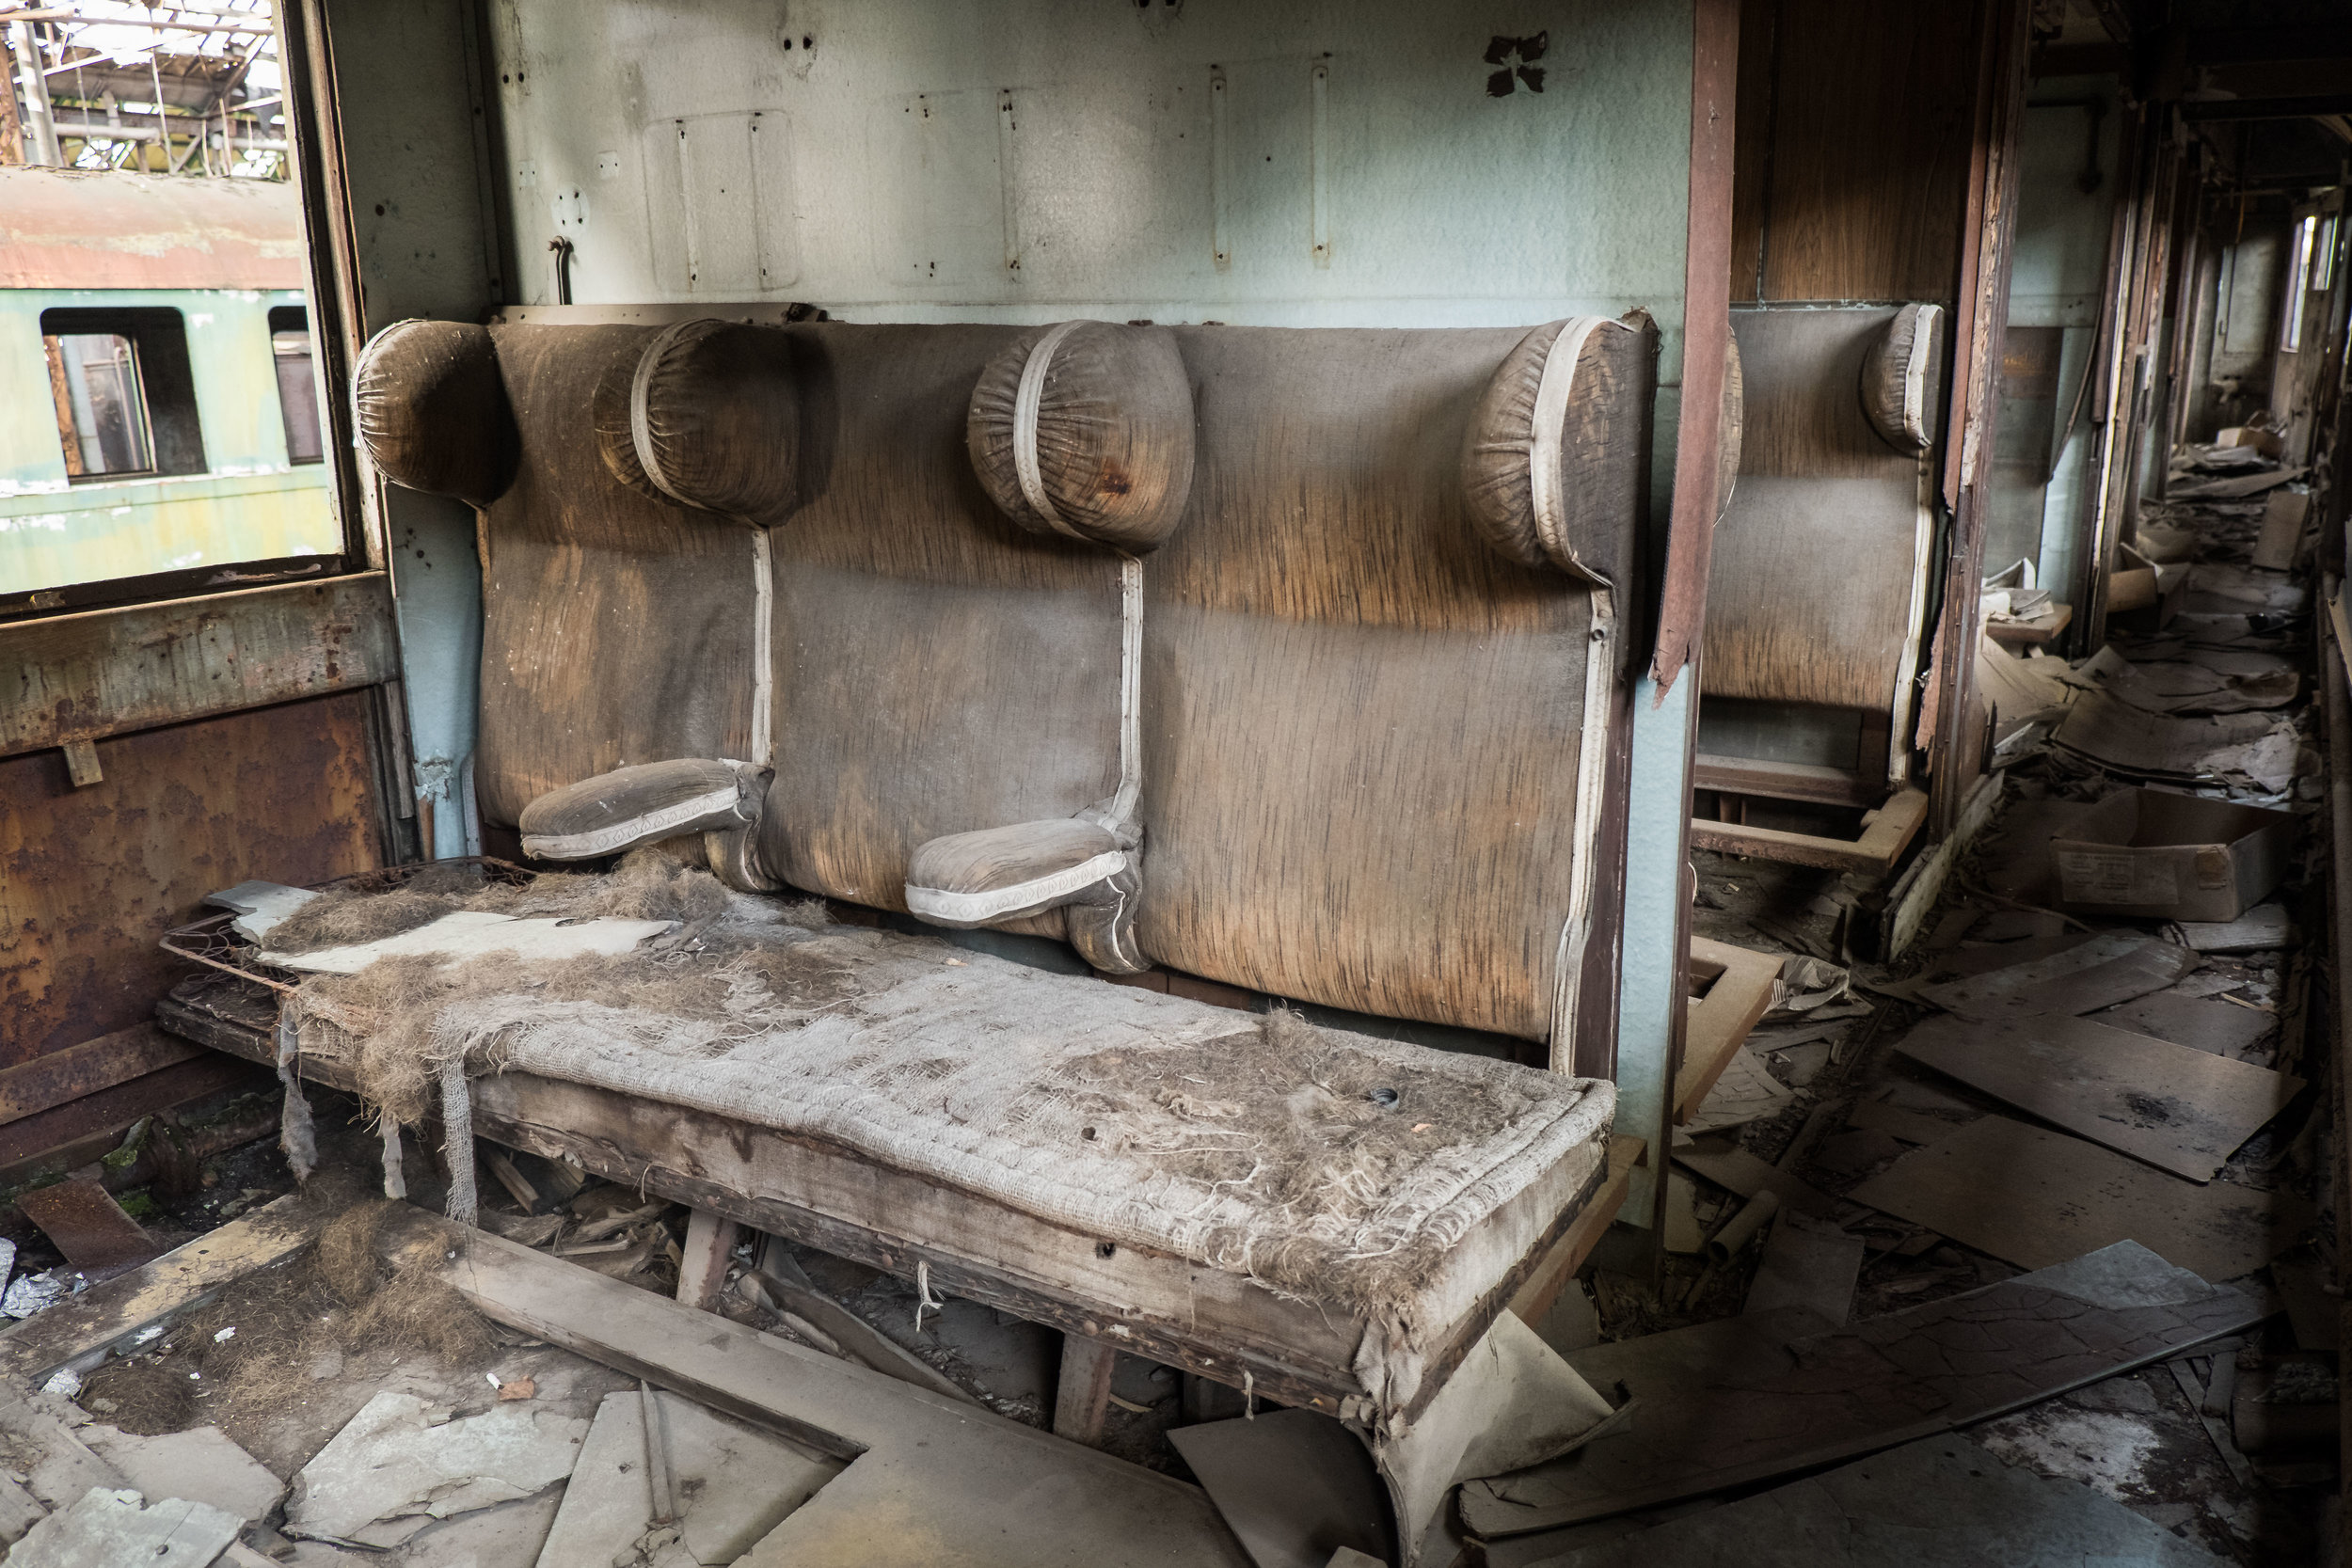 this carriage was definitely from the early-1900s; the seats were made of burlap, horsehair, and springs